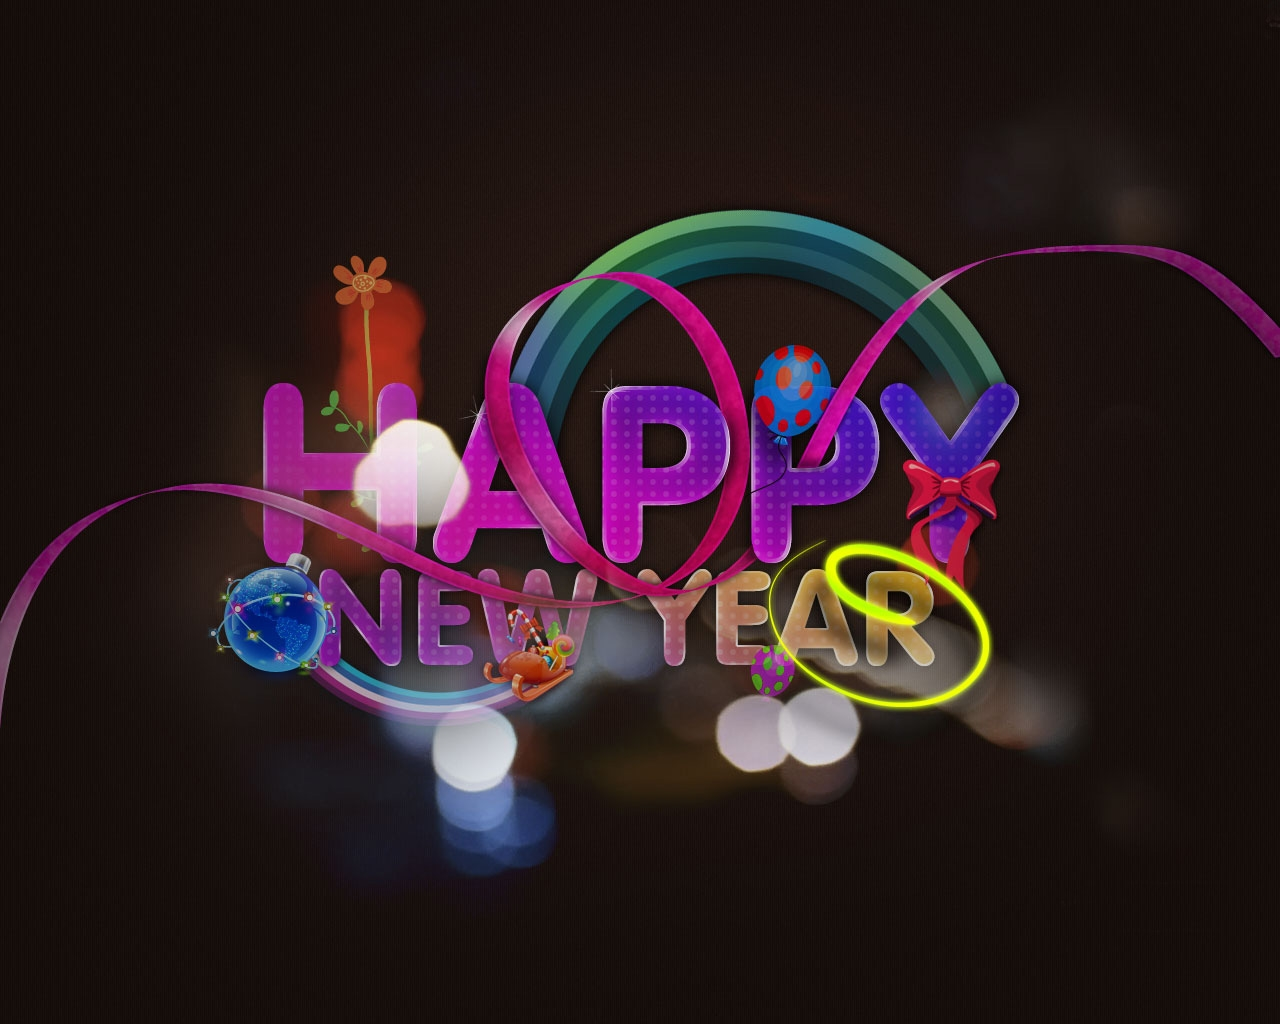 Most beautiful happy new year wishes greetings cards for New year eve messages friends